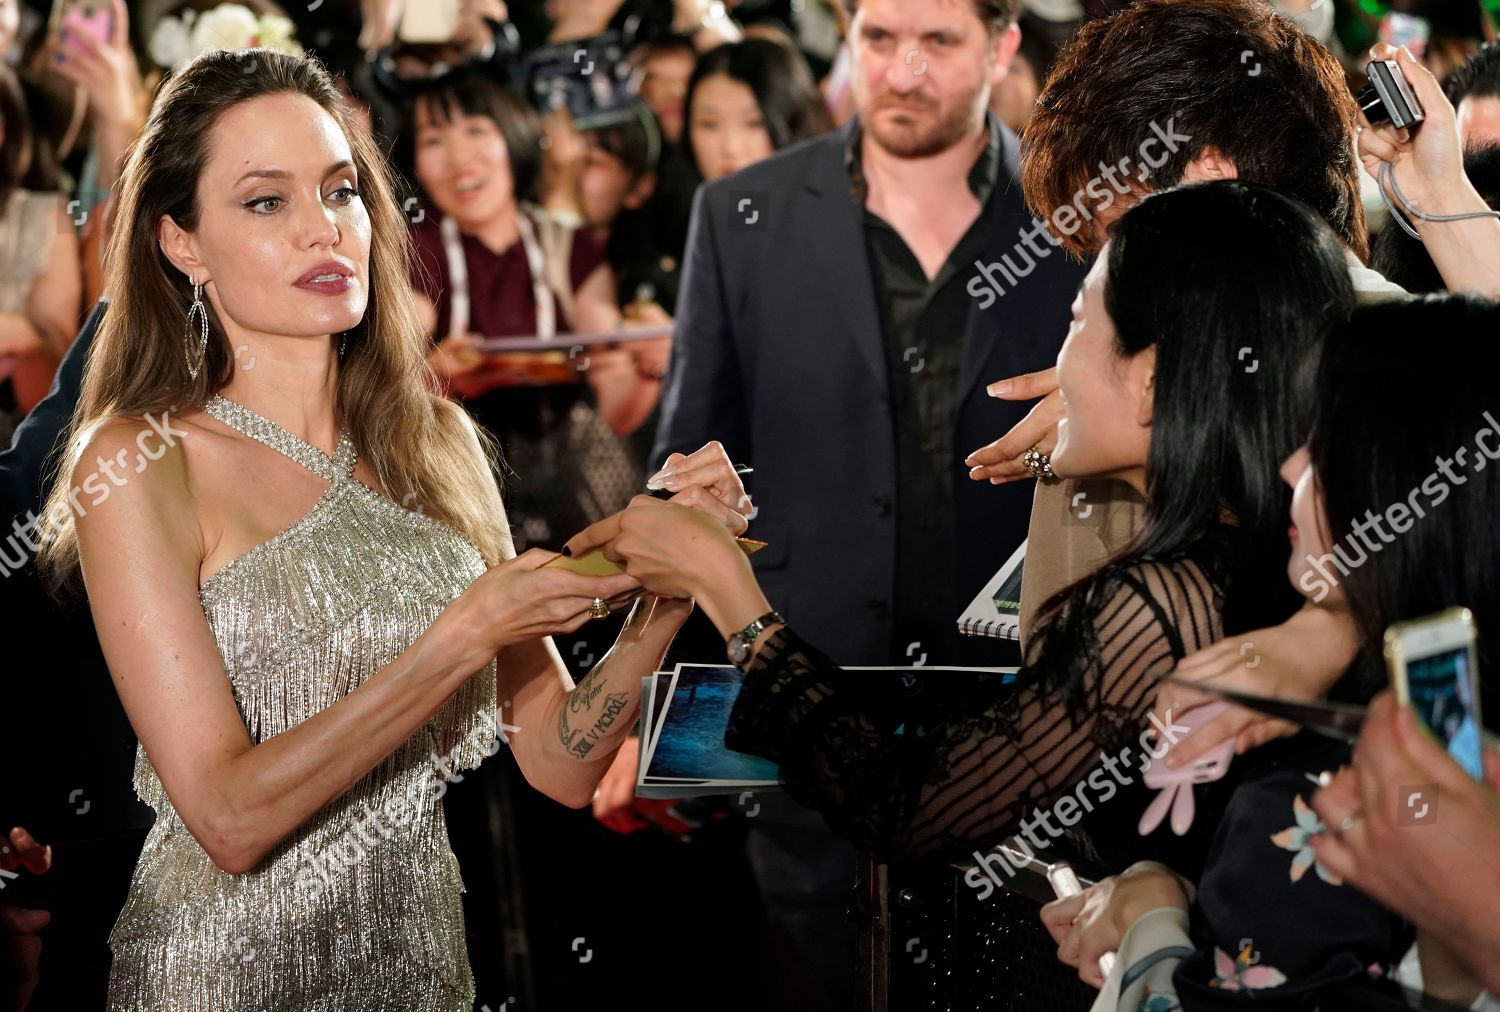 Angelina Jolie Signs Autographs Fans During Red Foto